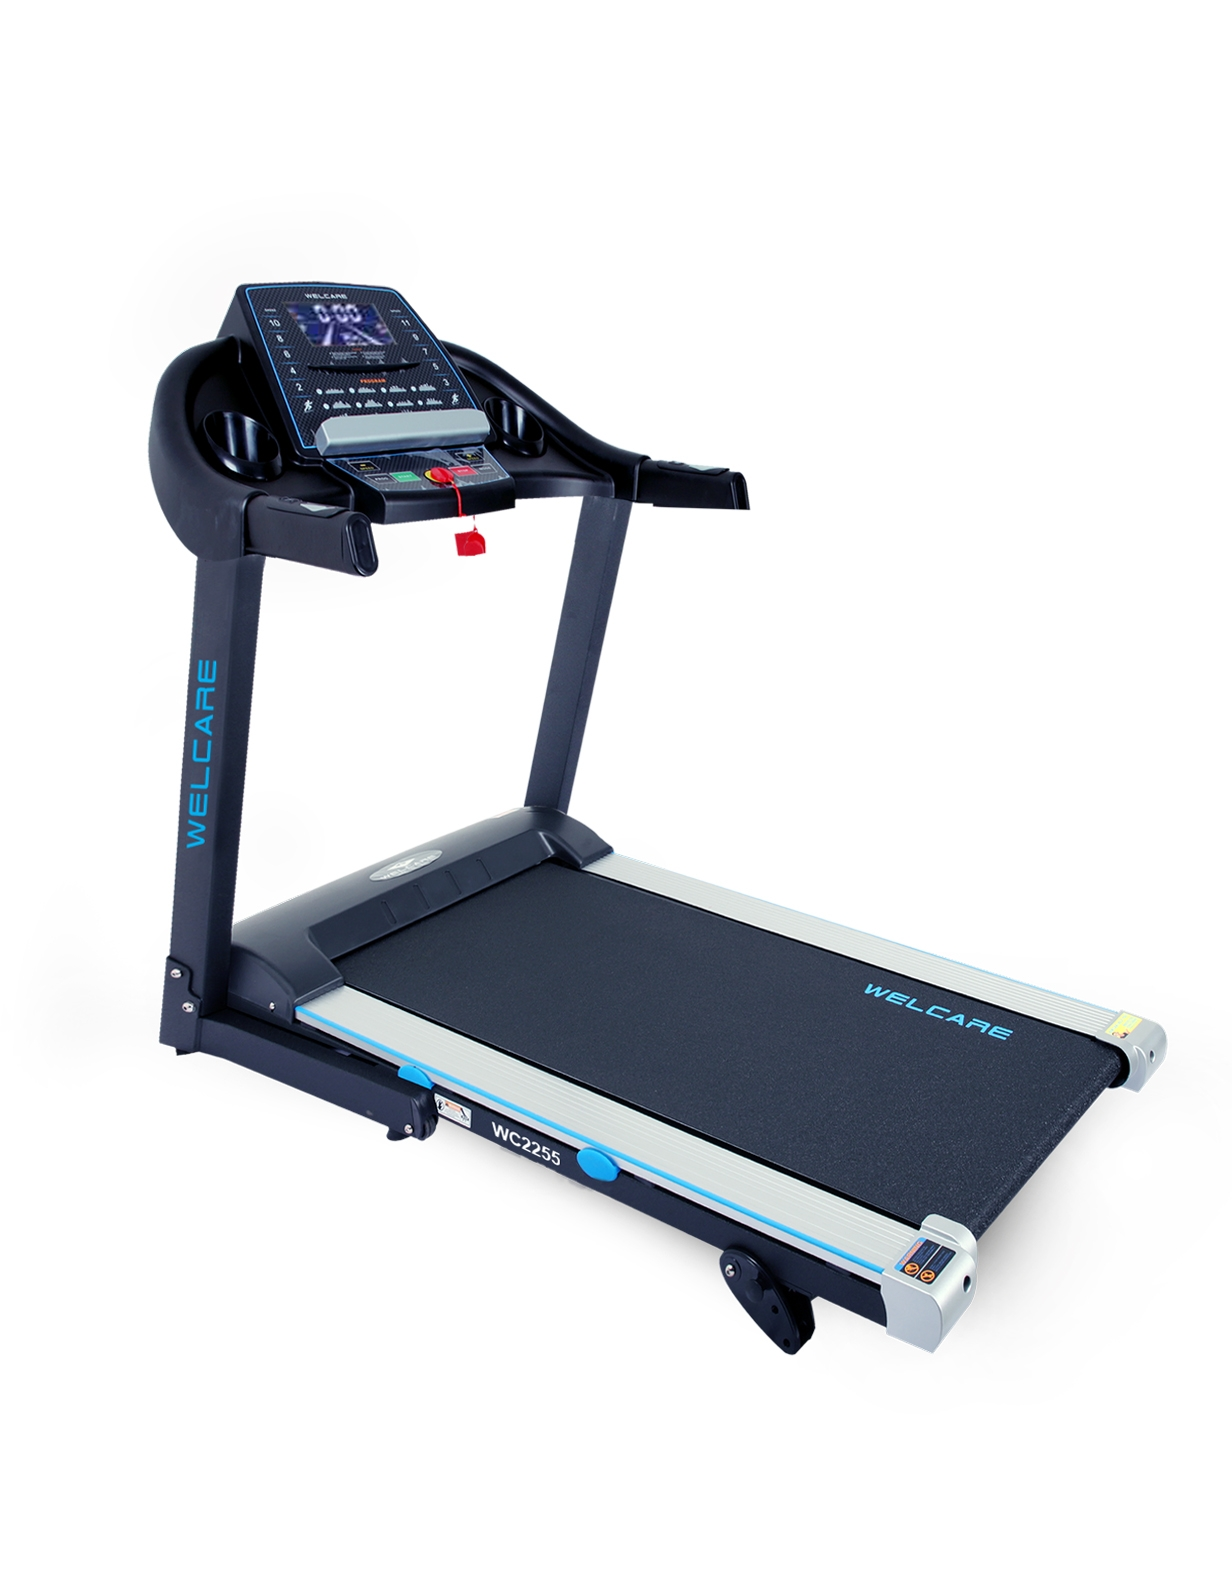 WC 2266 MOTORIZED TREADMILL